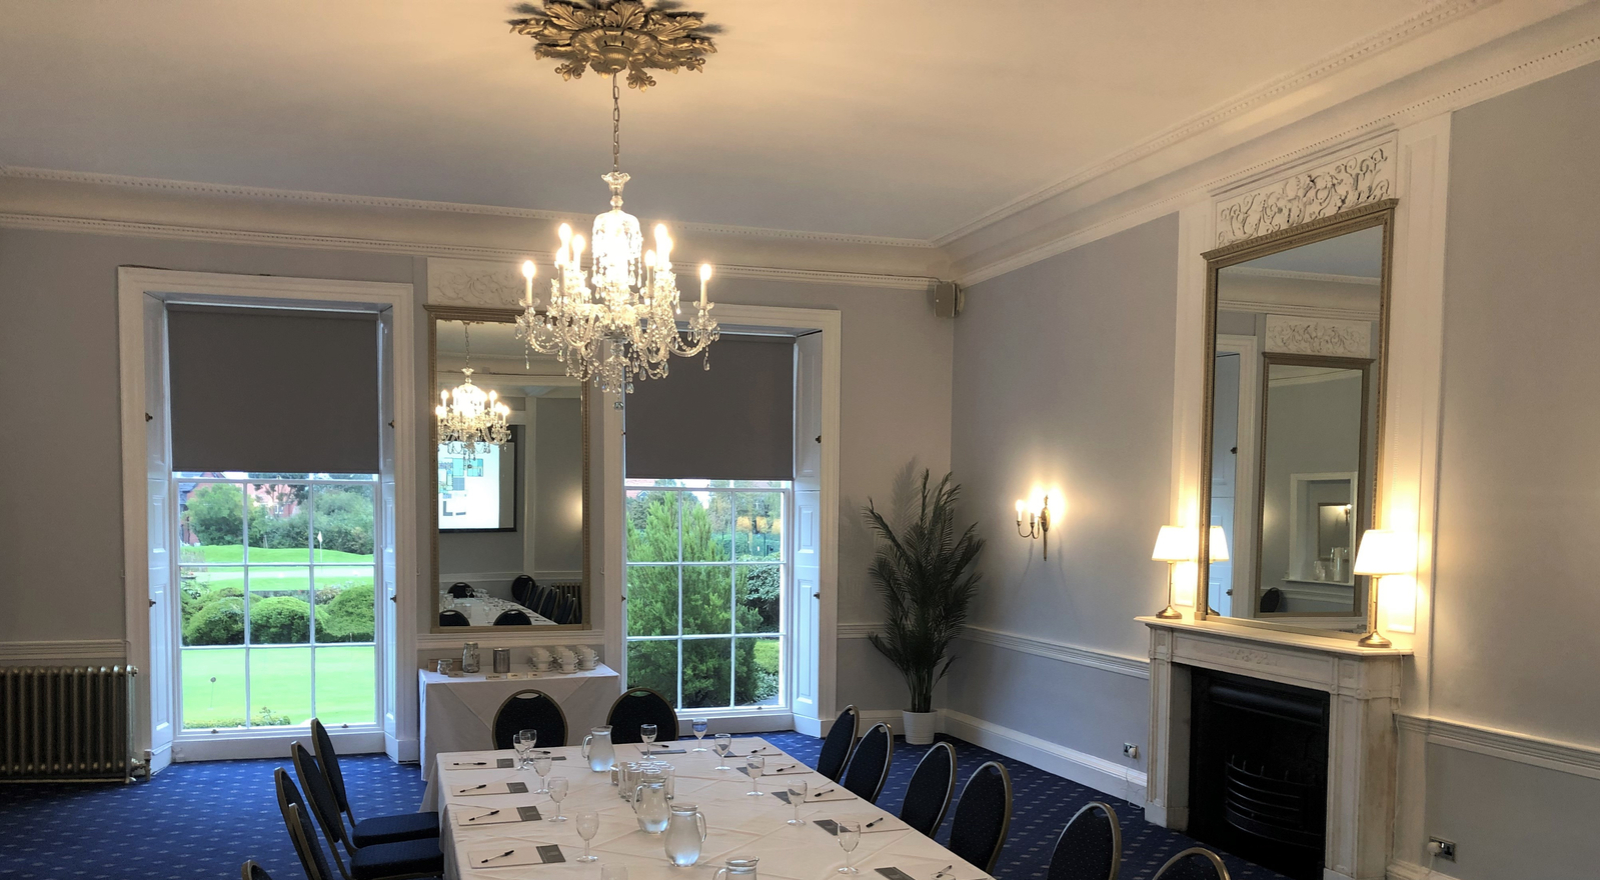 topsham room, exeter golf and country club, meeting rooms, meeting rooms exeter, wedding venue